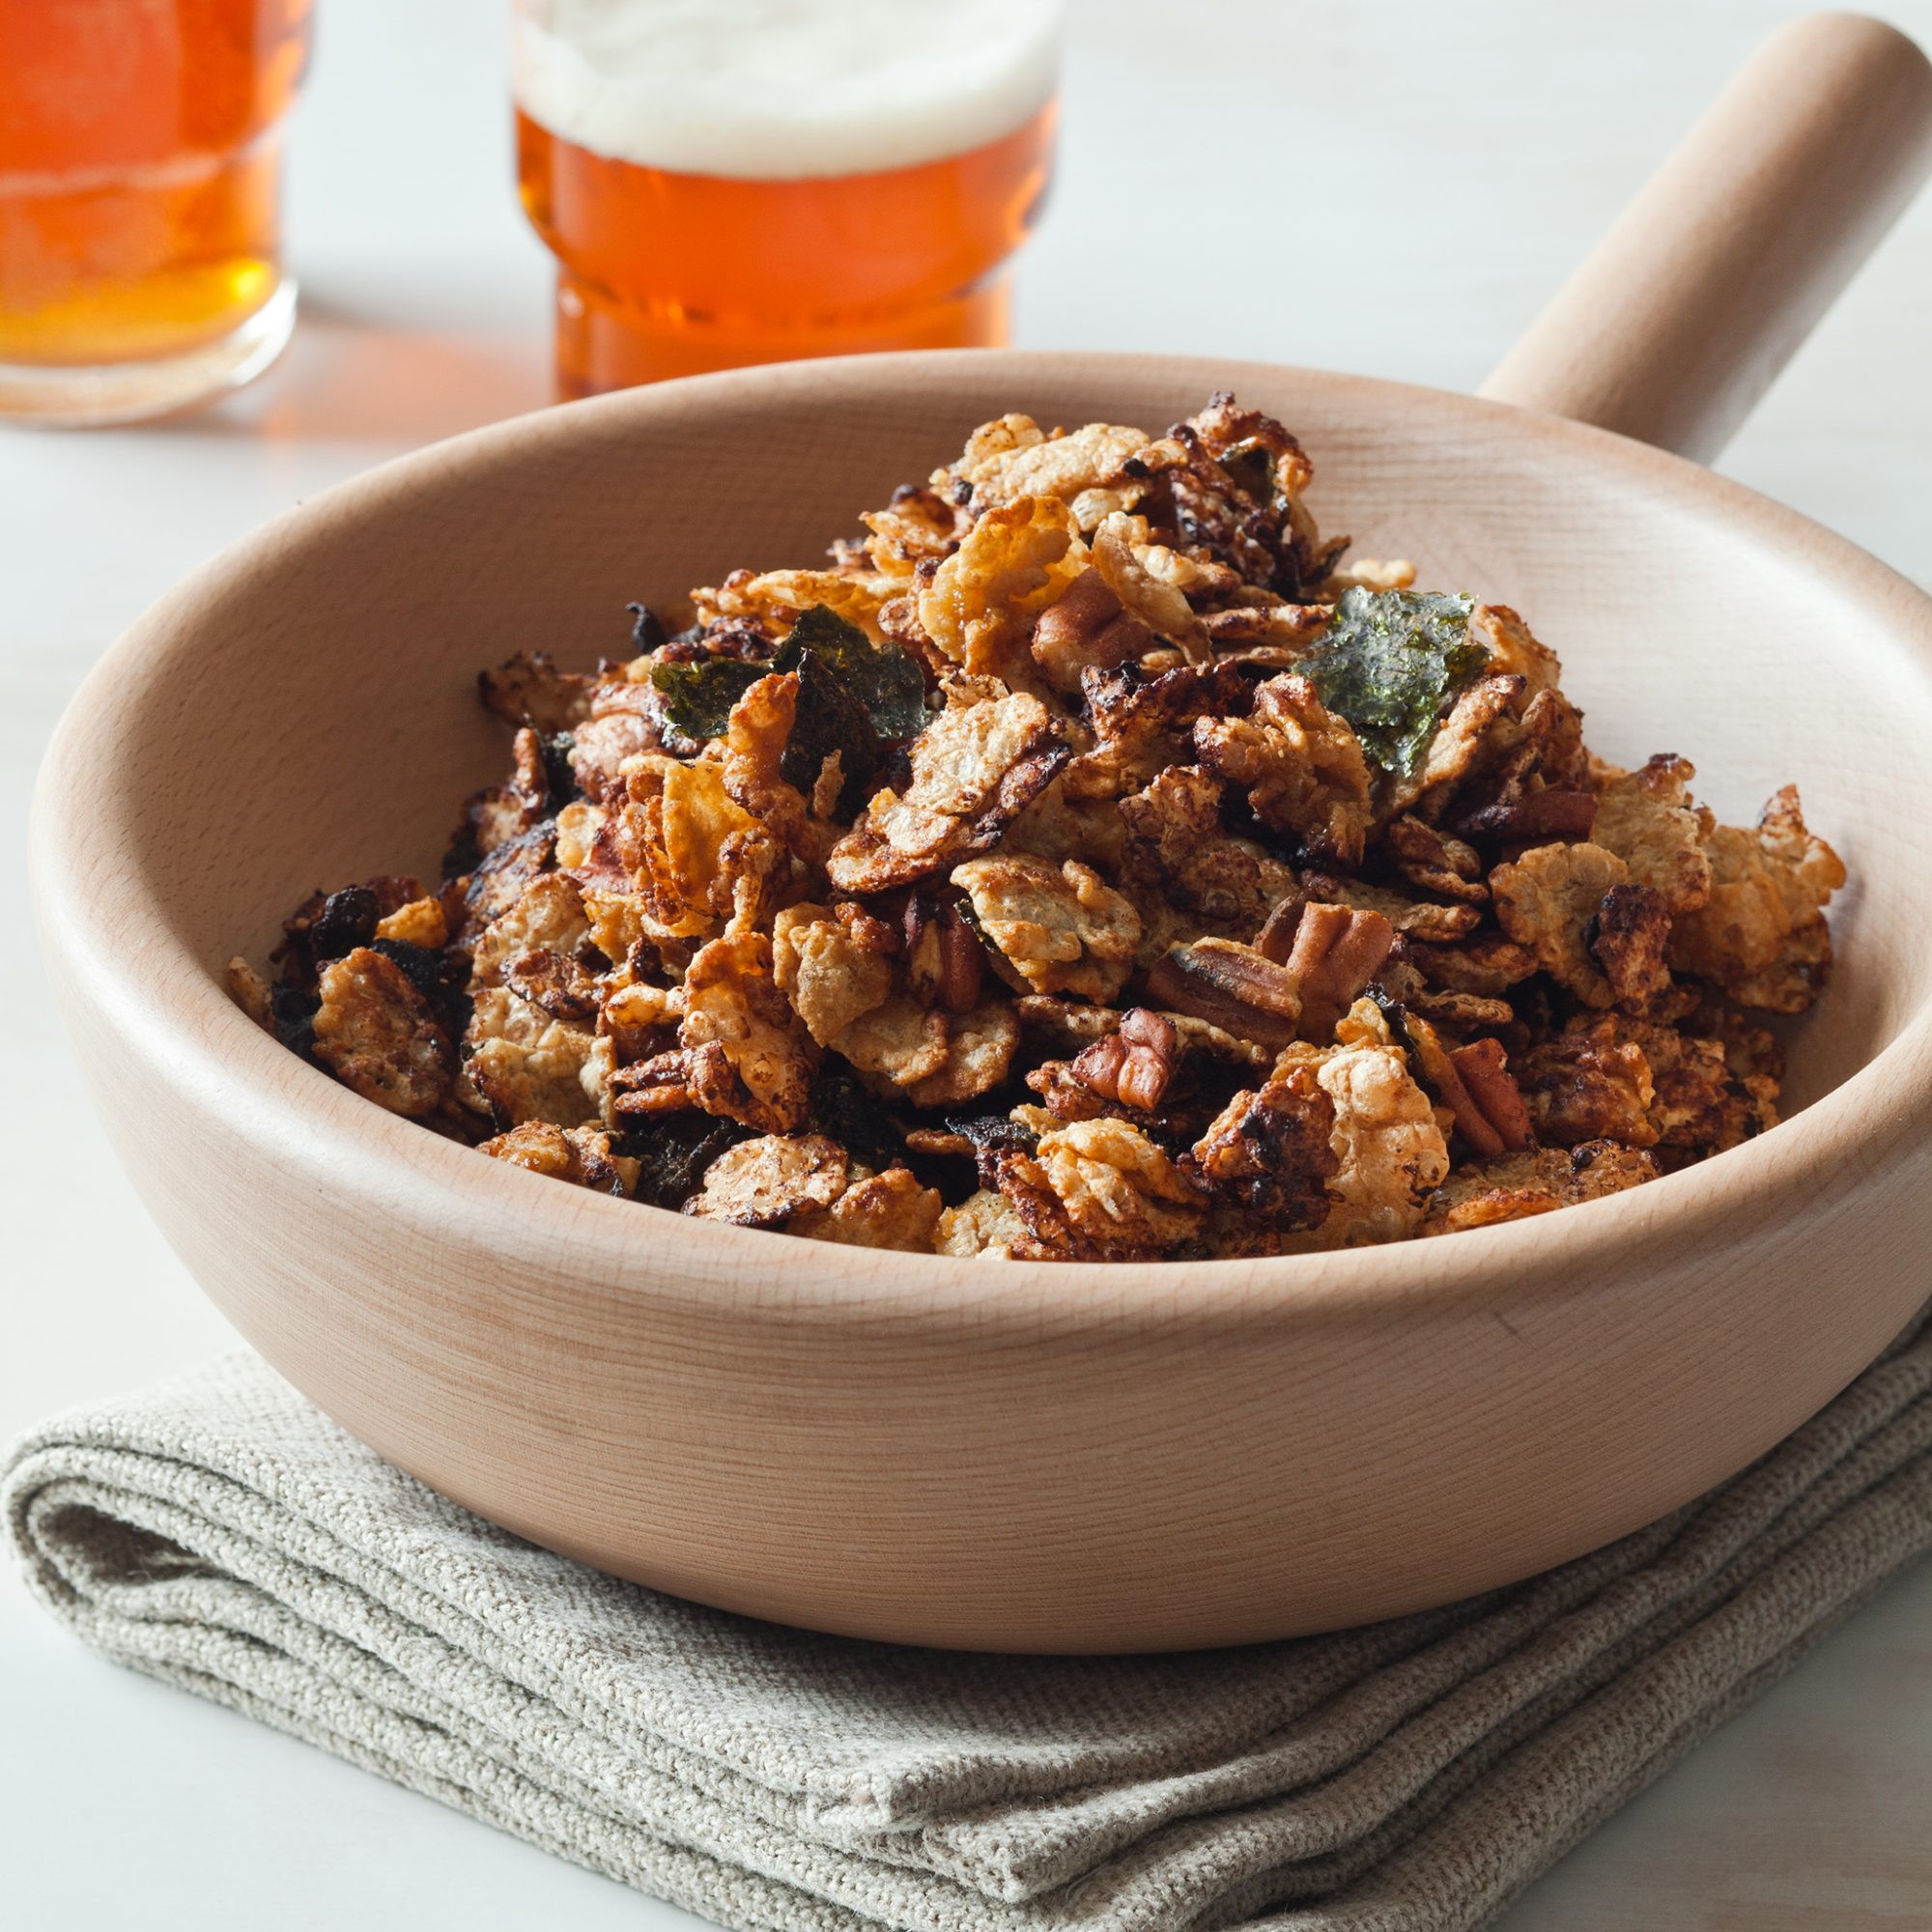 images-sys-201203-r-asian-snack-mix-with-nori.jpg